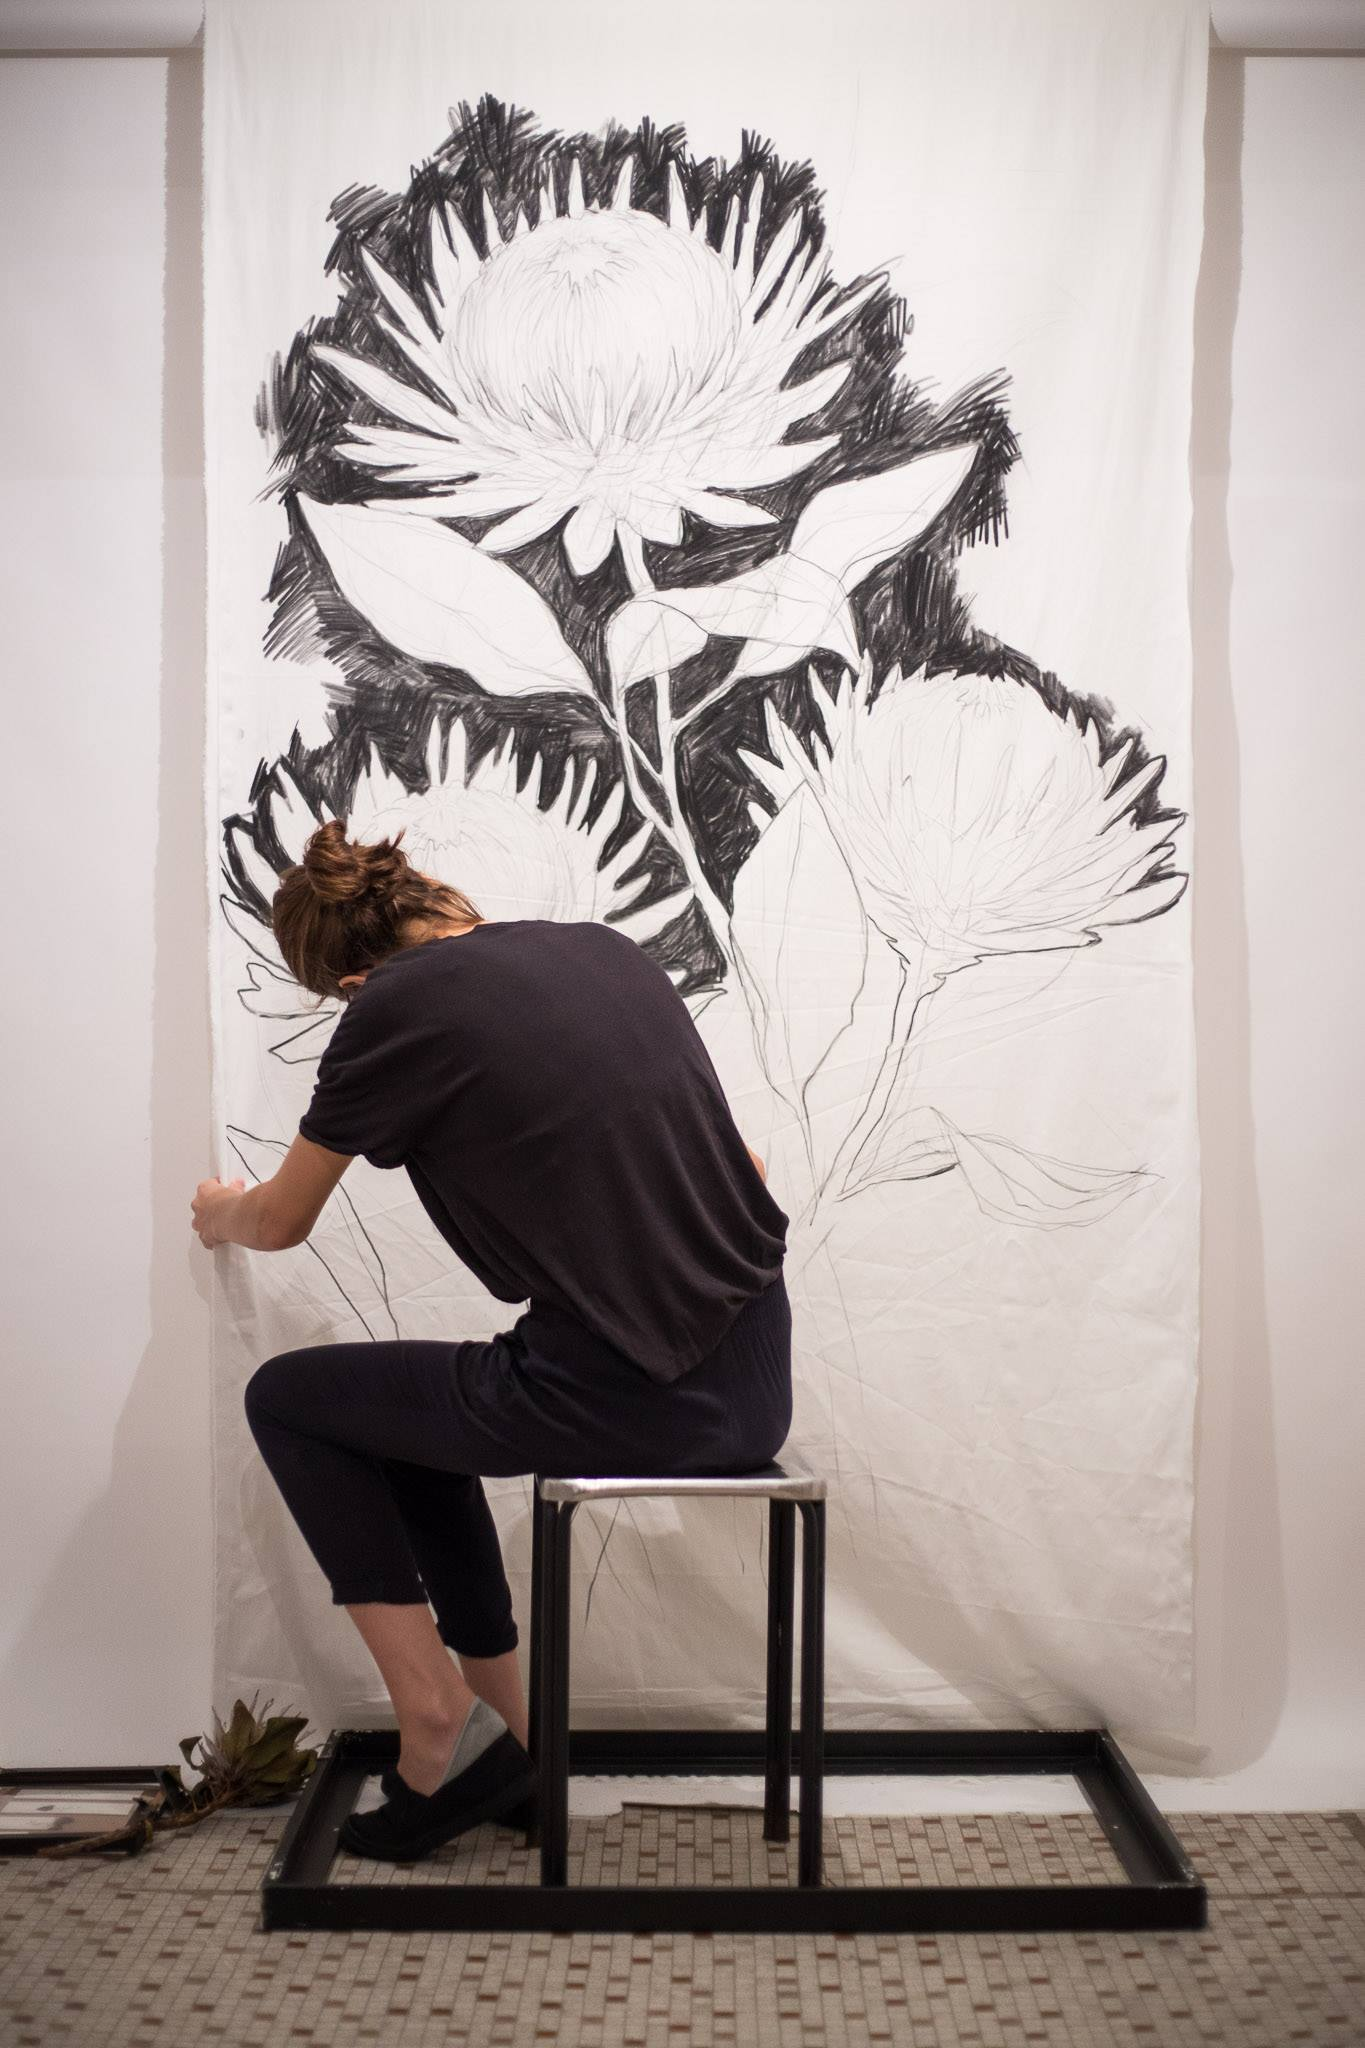 Imperfect Flower - Pursuit of Perfection exhibition by J.Jing  Charcoal on fabric, Mahka, Sheung Wan, Hong Kong, 2017